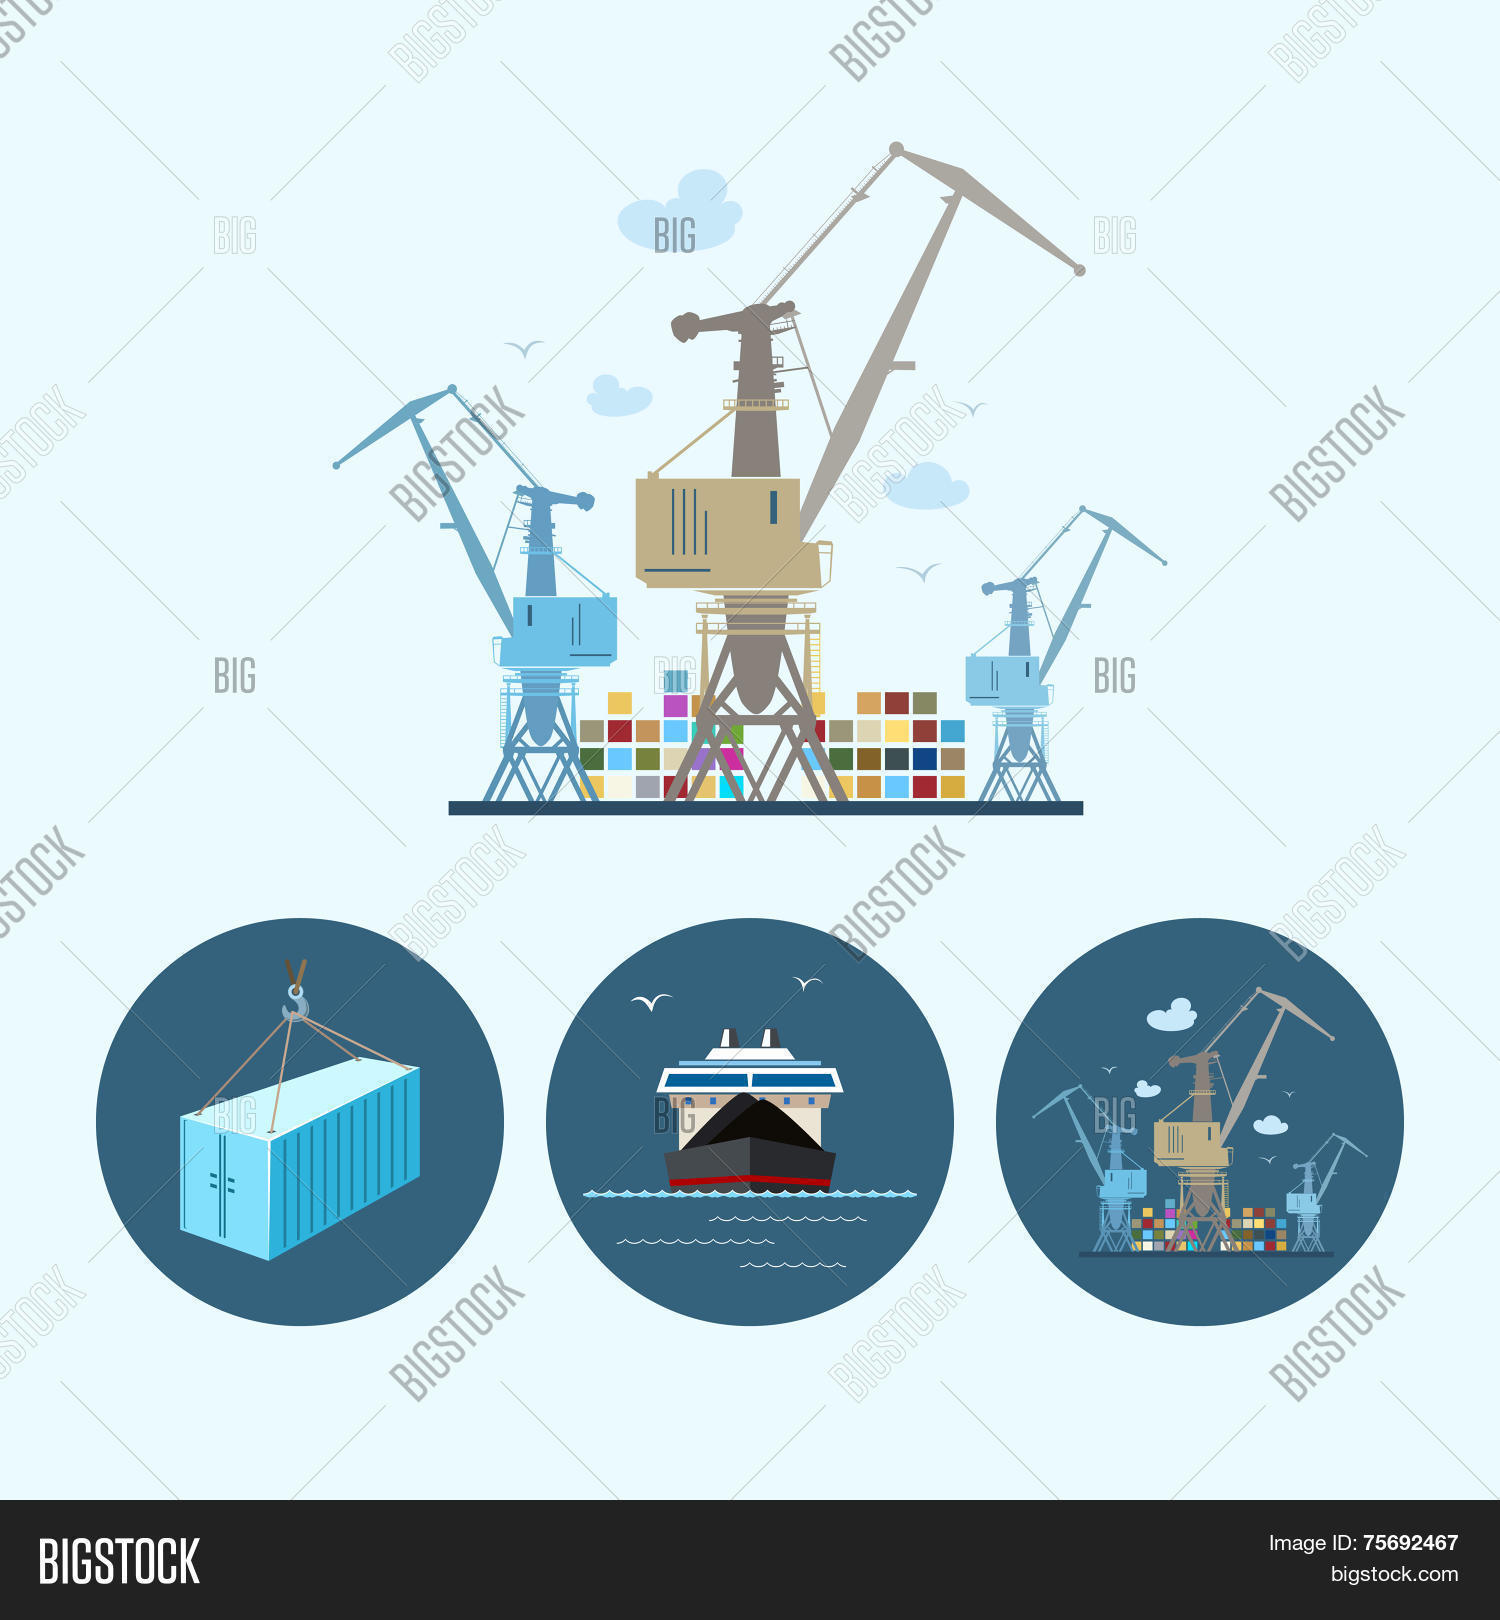 hight resolution of crane unloads containers from cargo container ship set with 3 round colorful icons dry cargo ship crane unloads containers from cargo container ship and